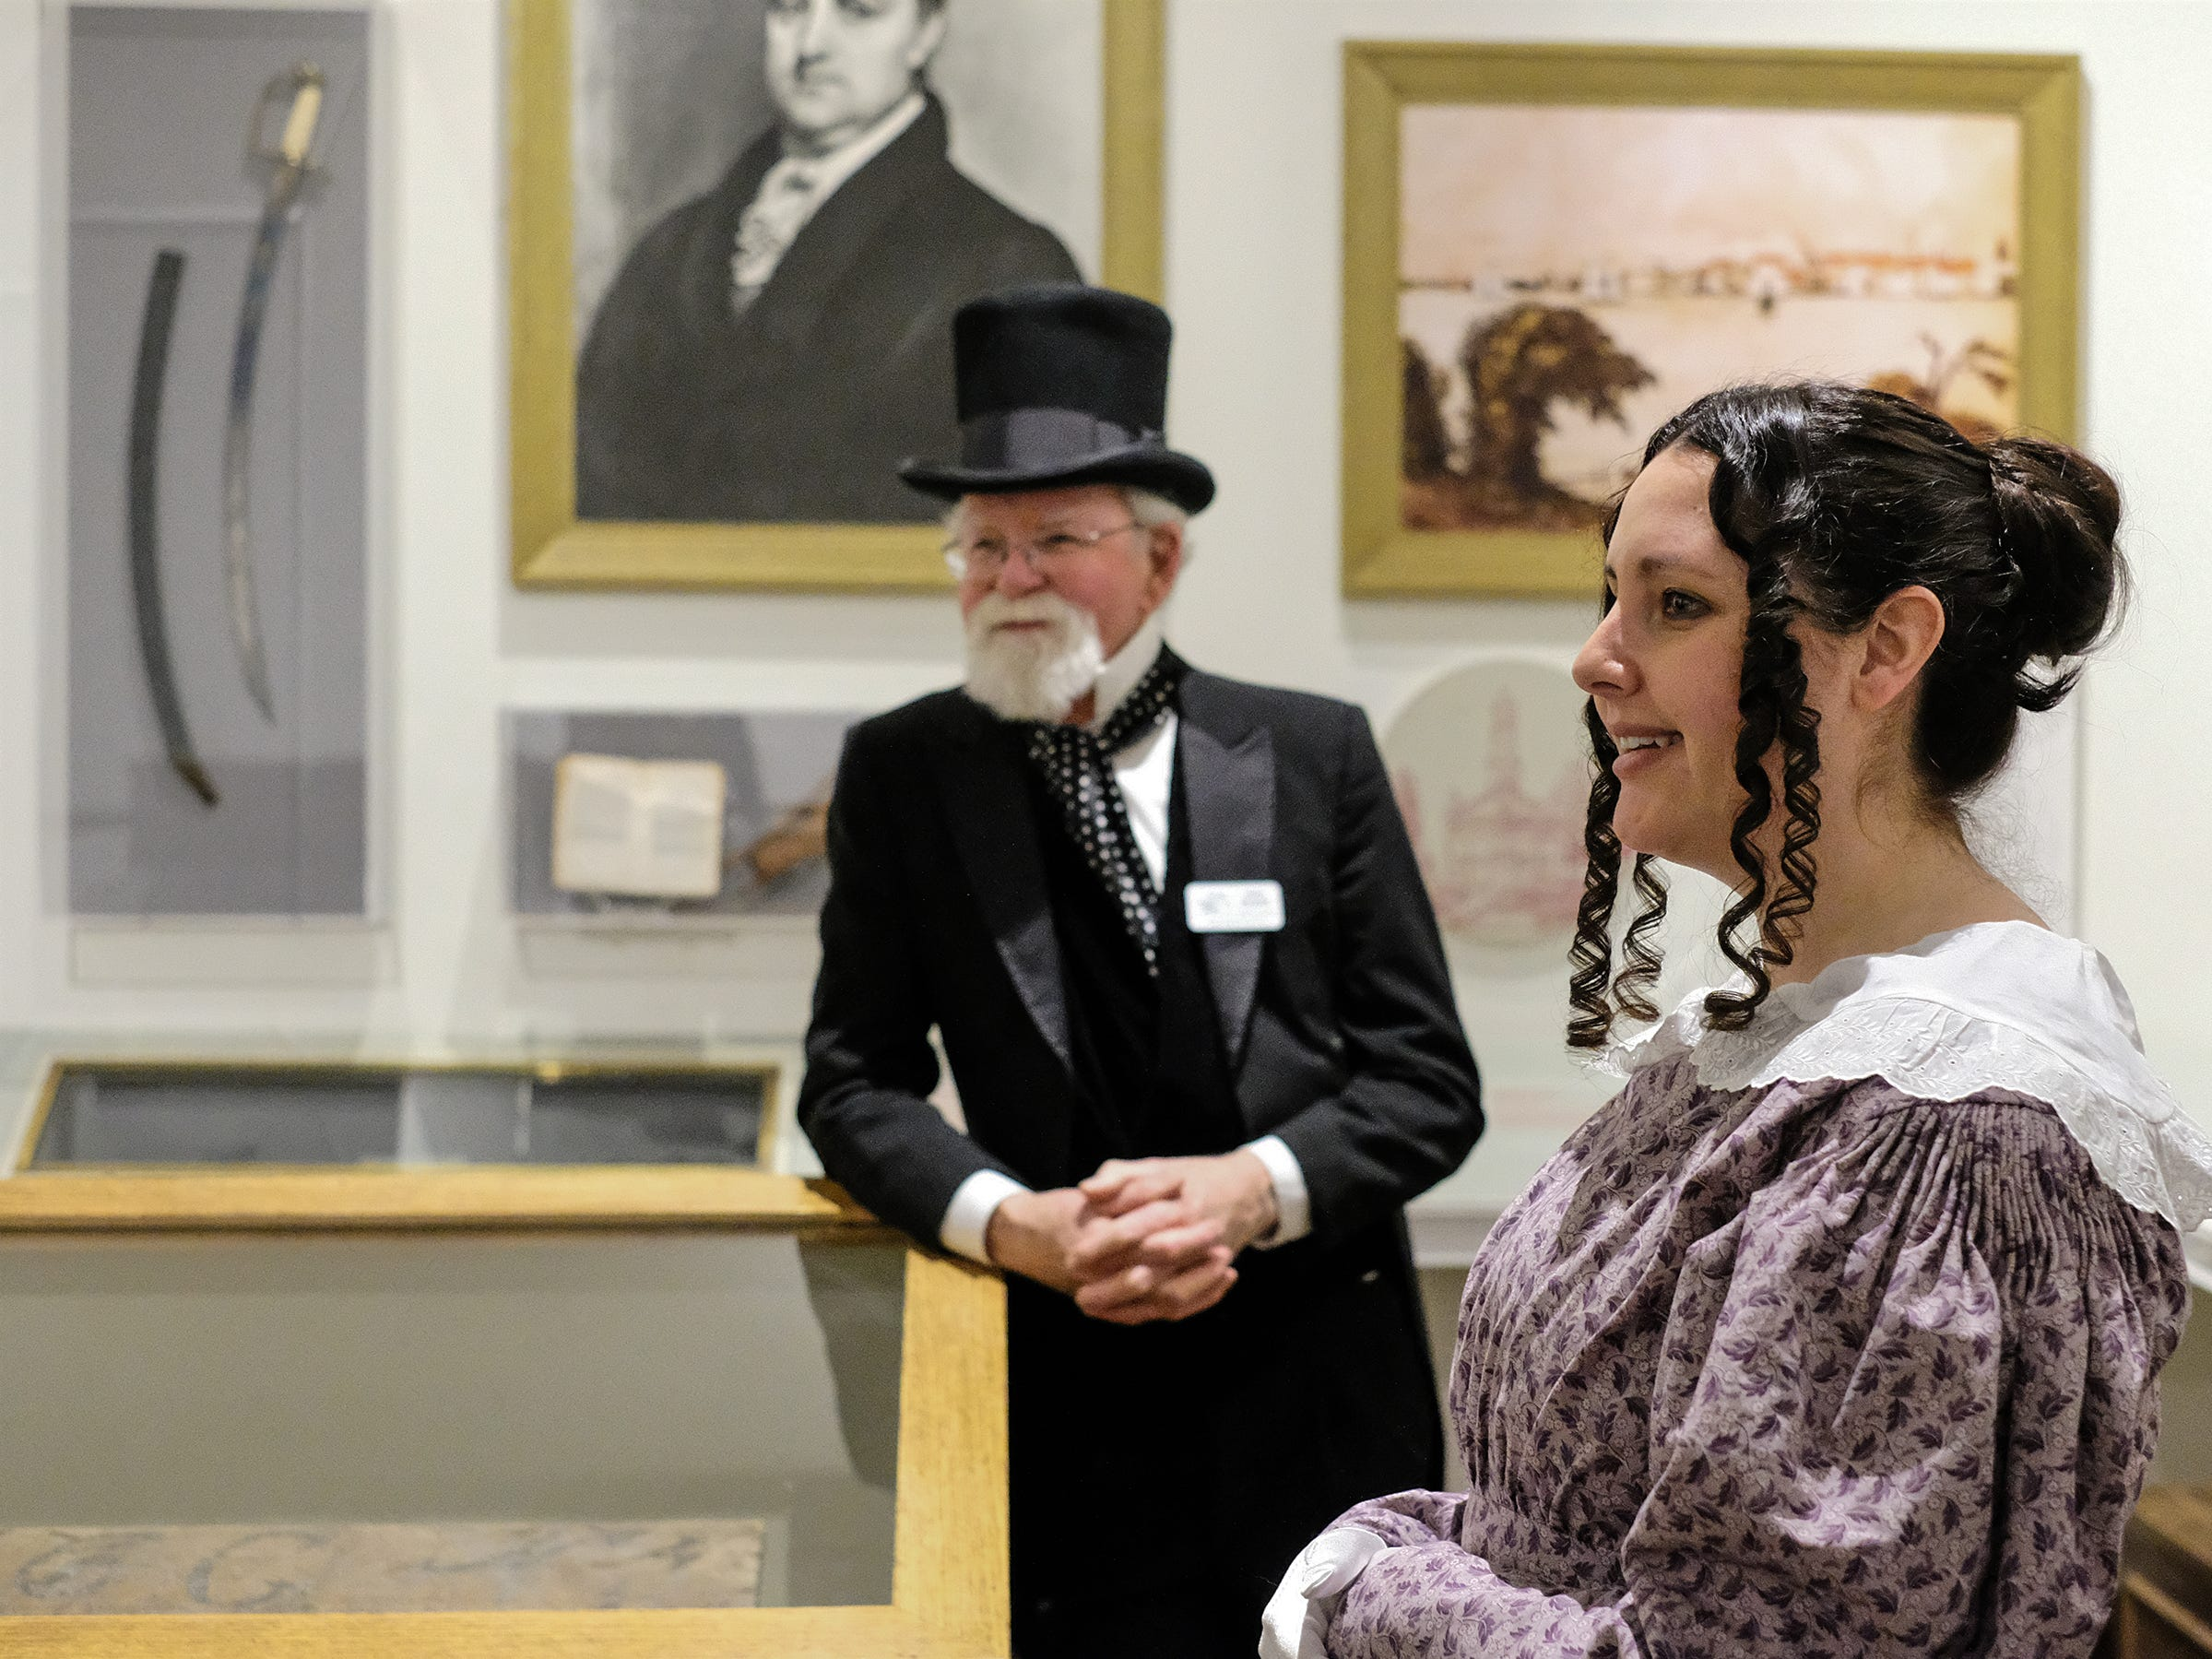 Docents, Christina Lee and Gary Koelsch talk to people about Michigan in the Statehood Room during the Welcome to Statehood Day 2019 event at the Michigan Library and Historical Center Saturday, Jan. 26, 2019. Michigan became a state on this day in 1837.